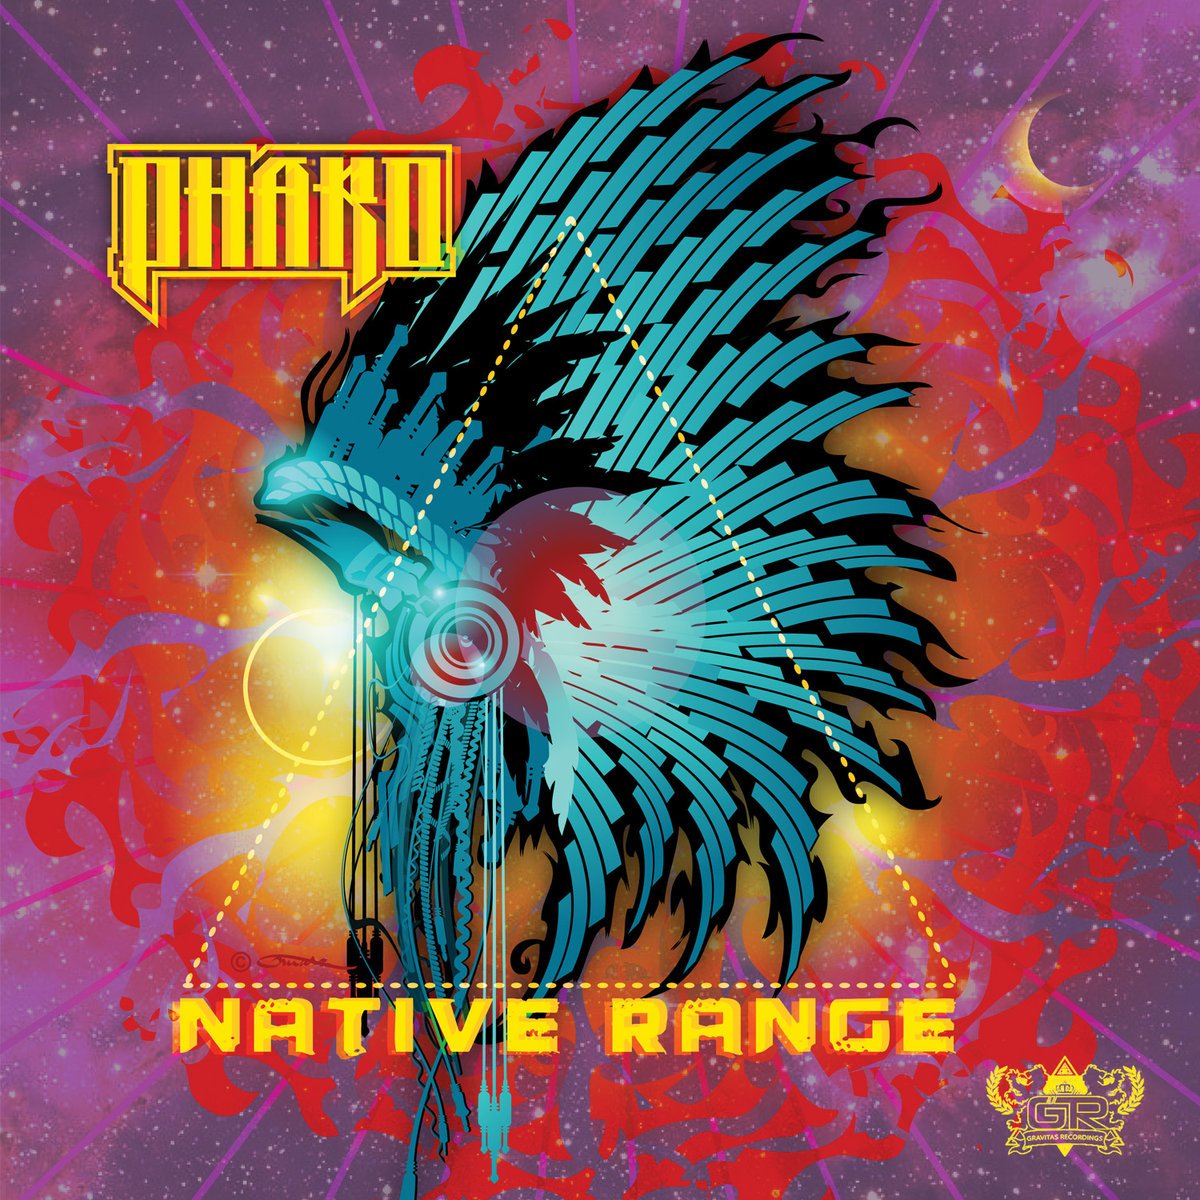 Pharo - Native Range (Psymbionic Remix) @ 'Native Range' album (Austin)